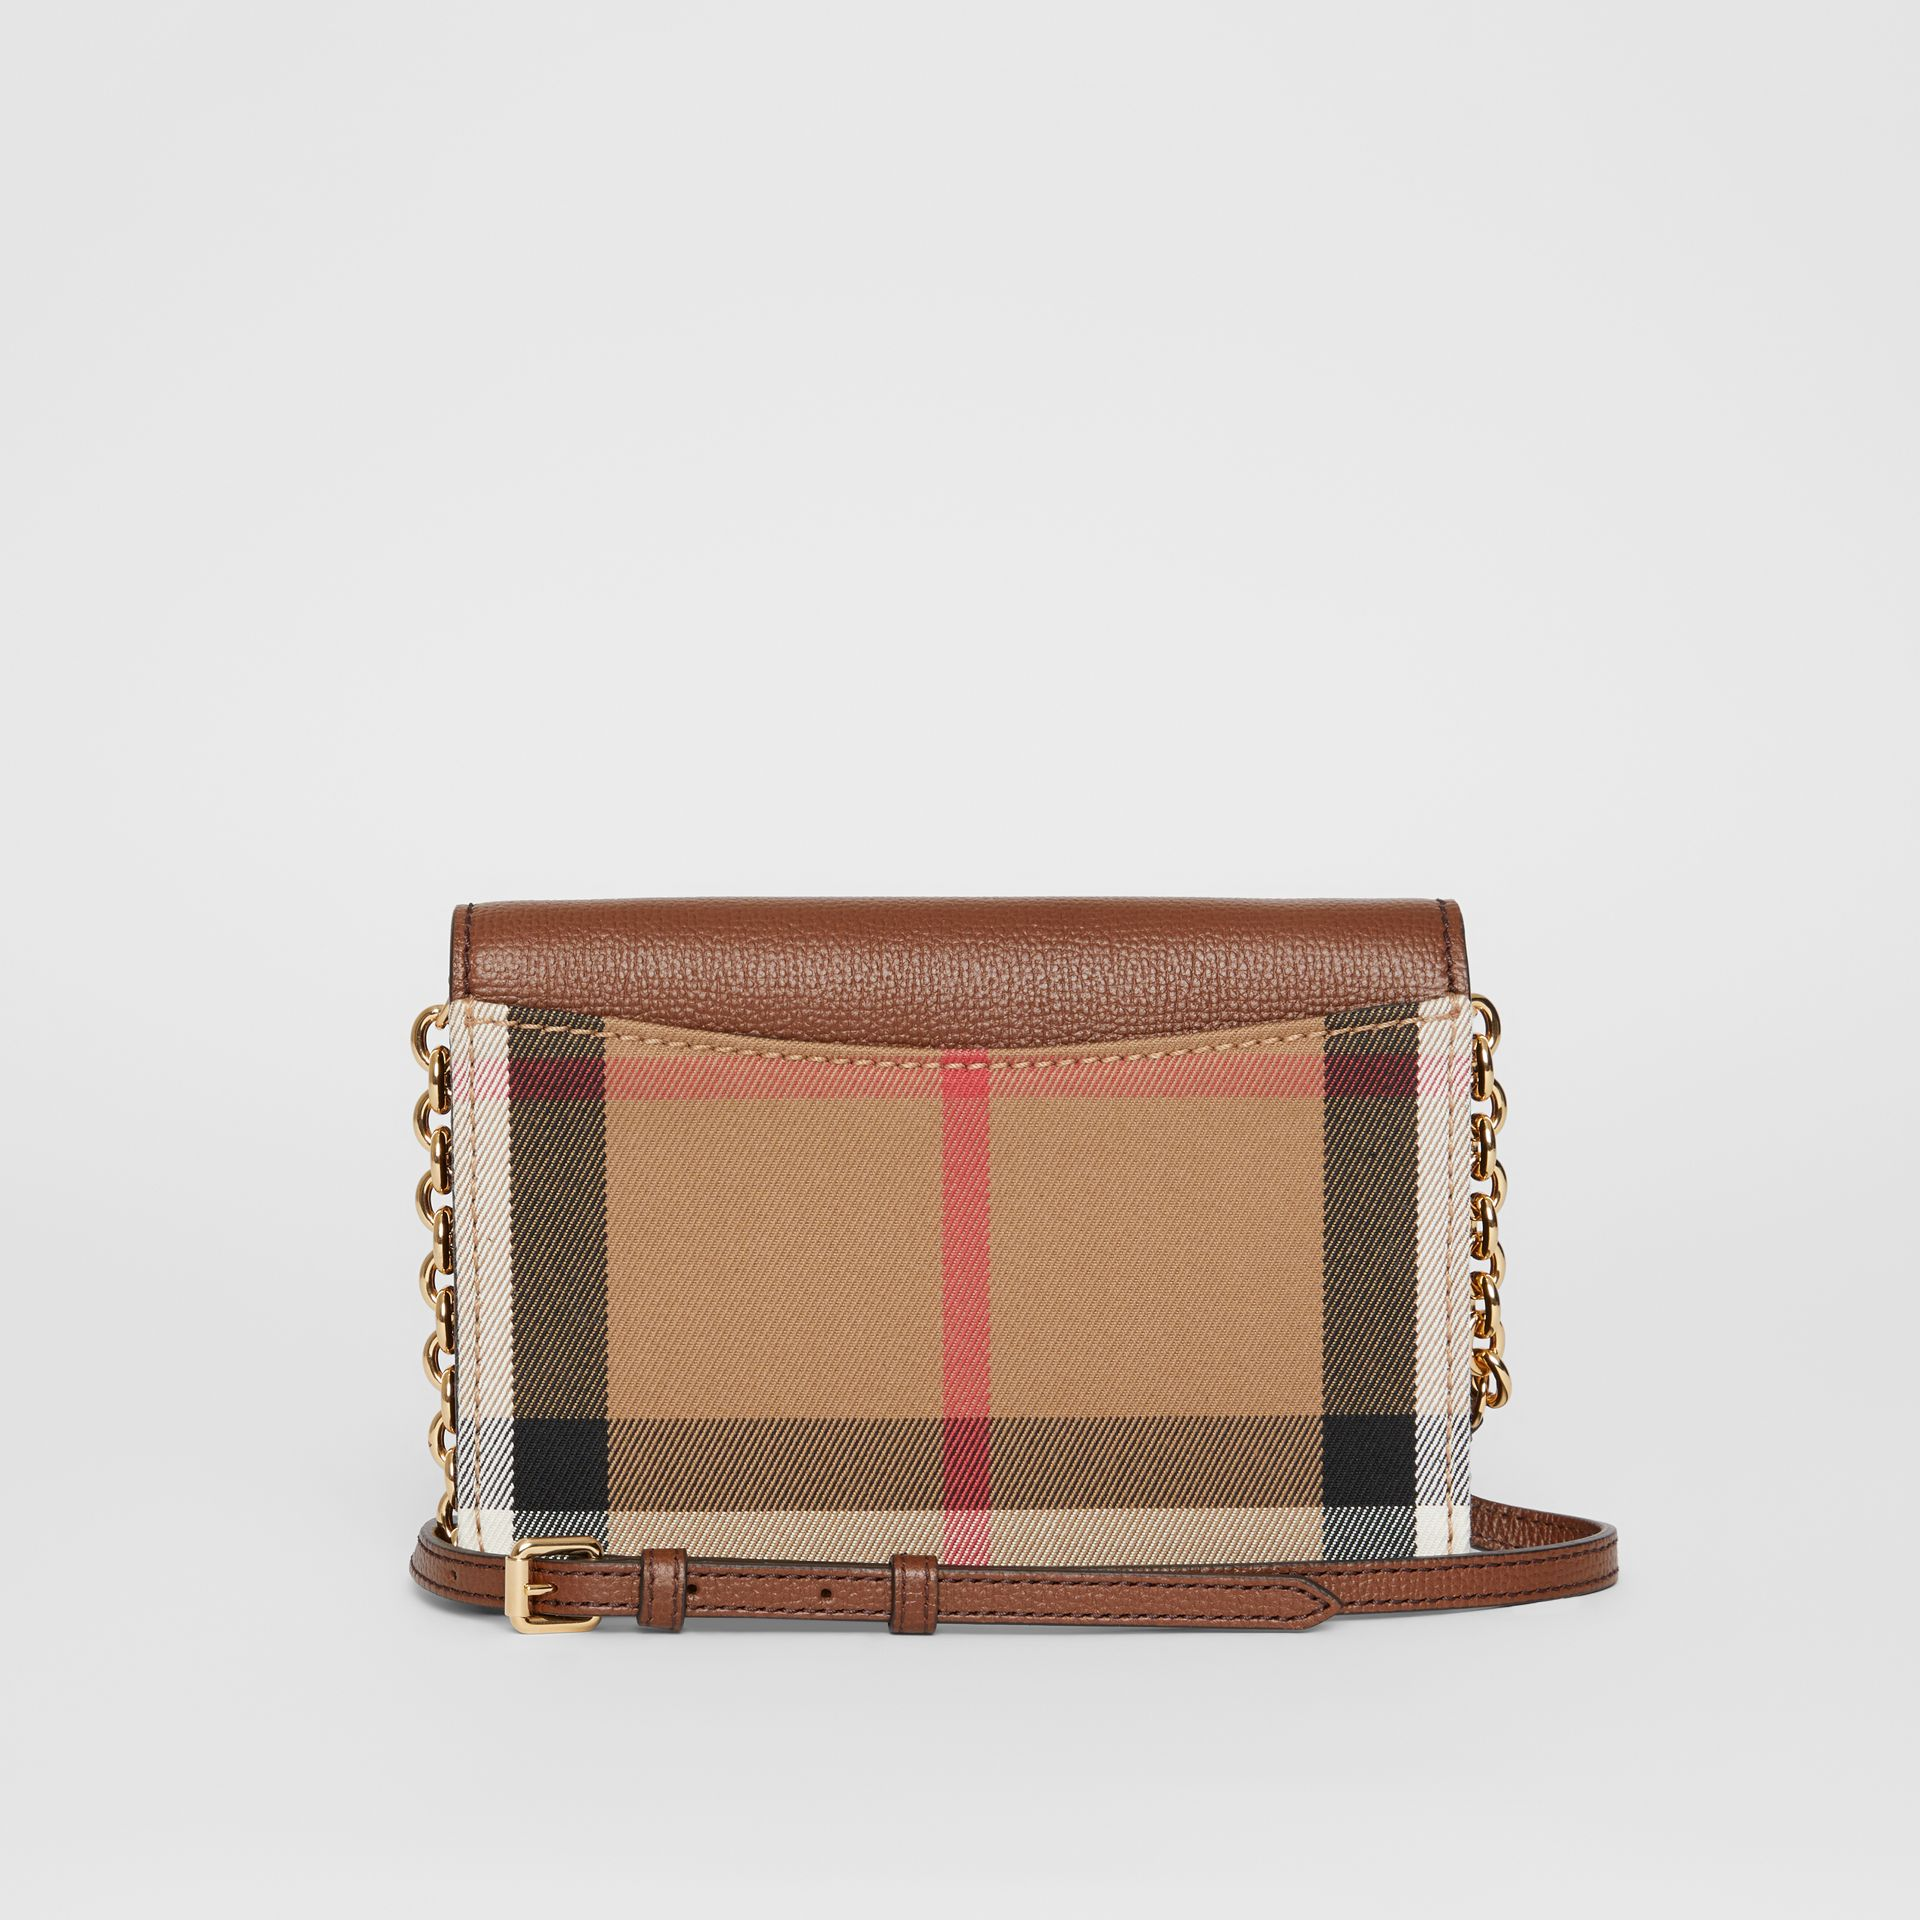 Leather and House Check Wallet with Detachable Strap in Tan - Women | Burberry - gallery image 7